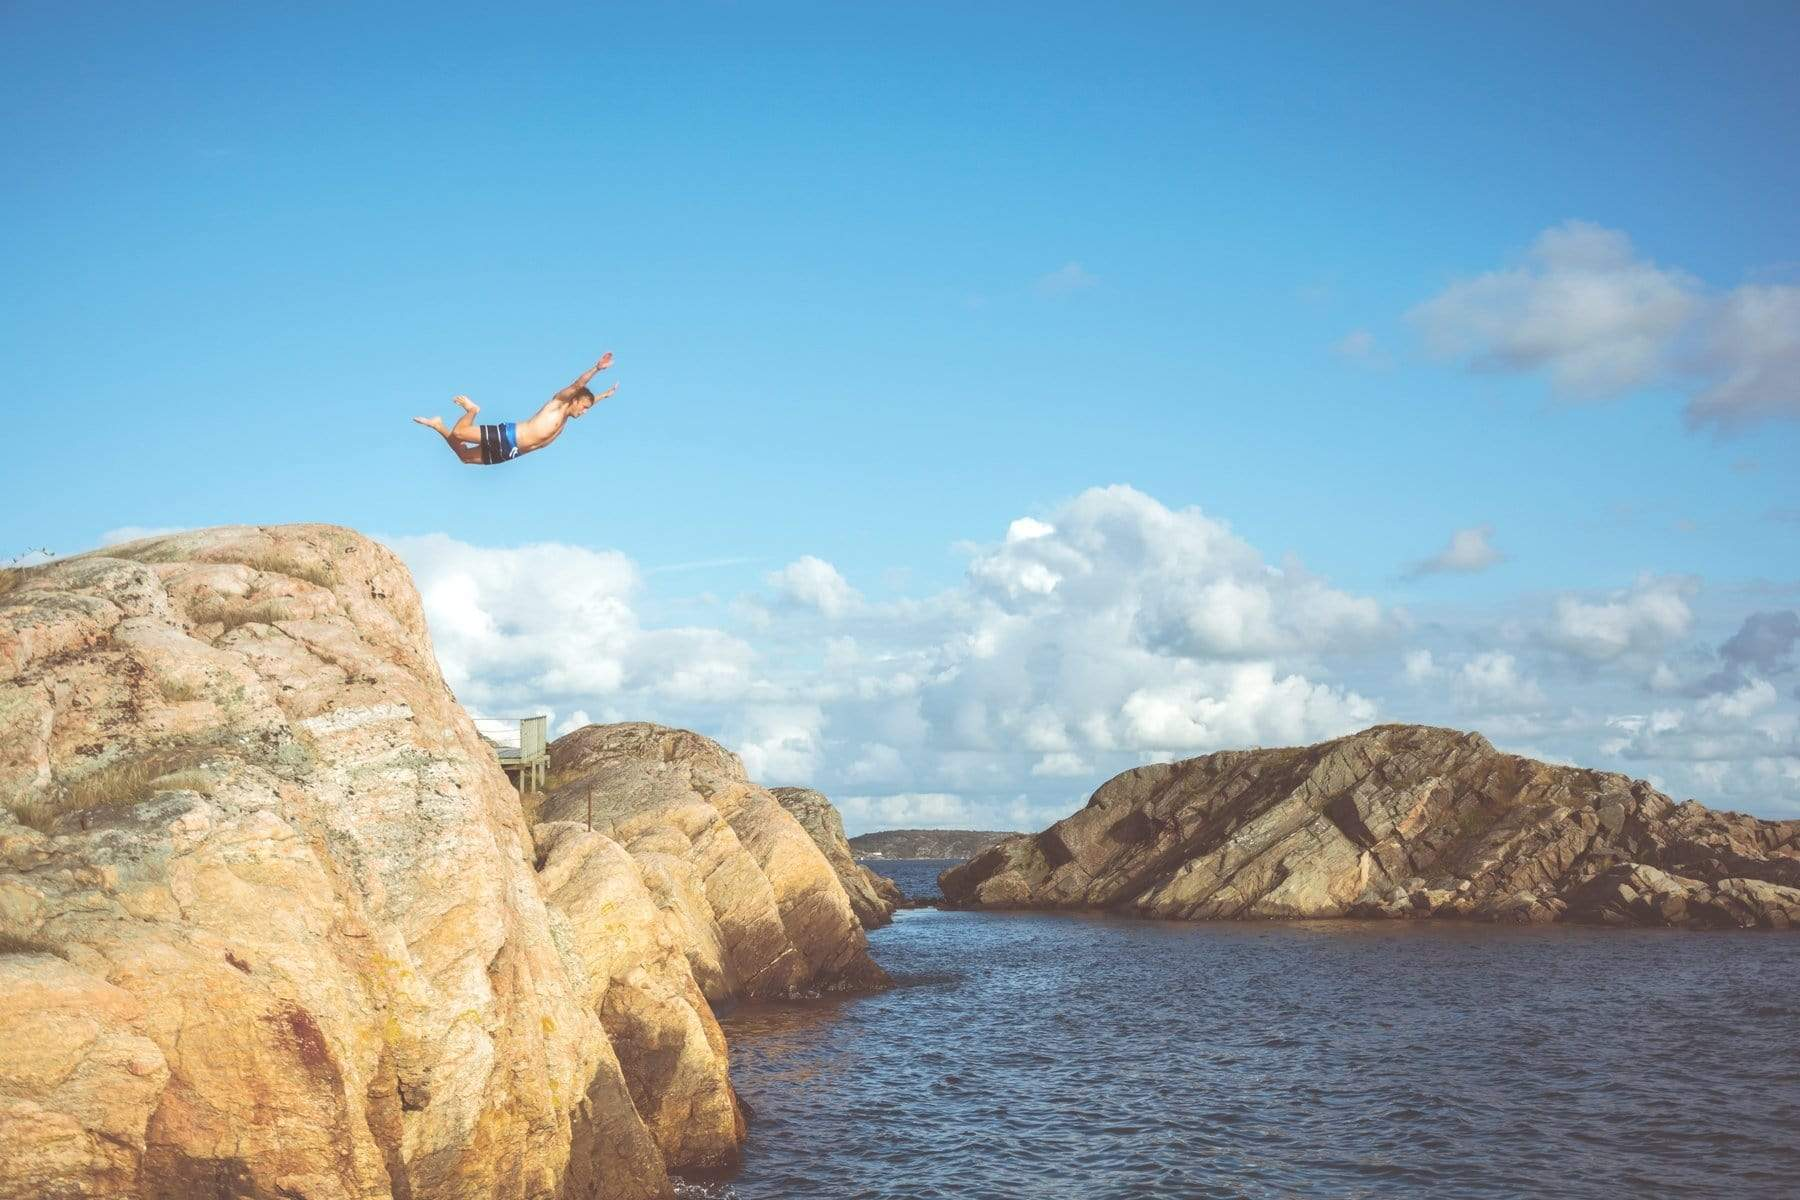 Man leaps off cliff into water